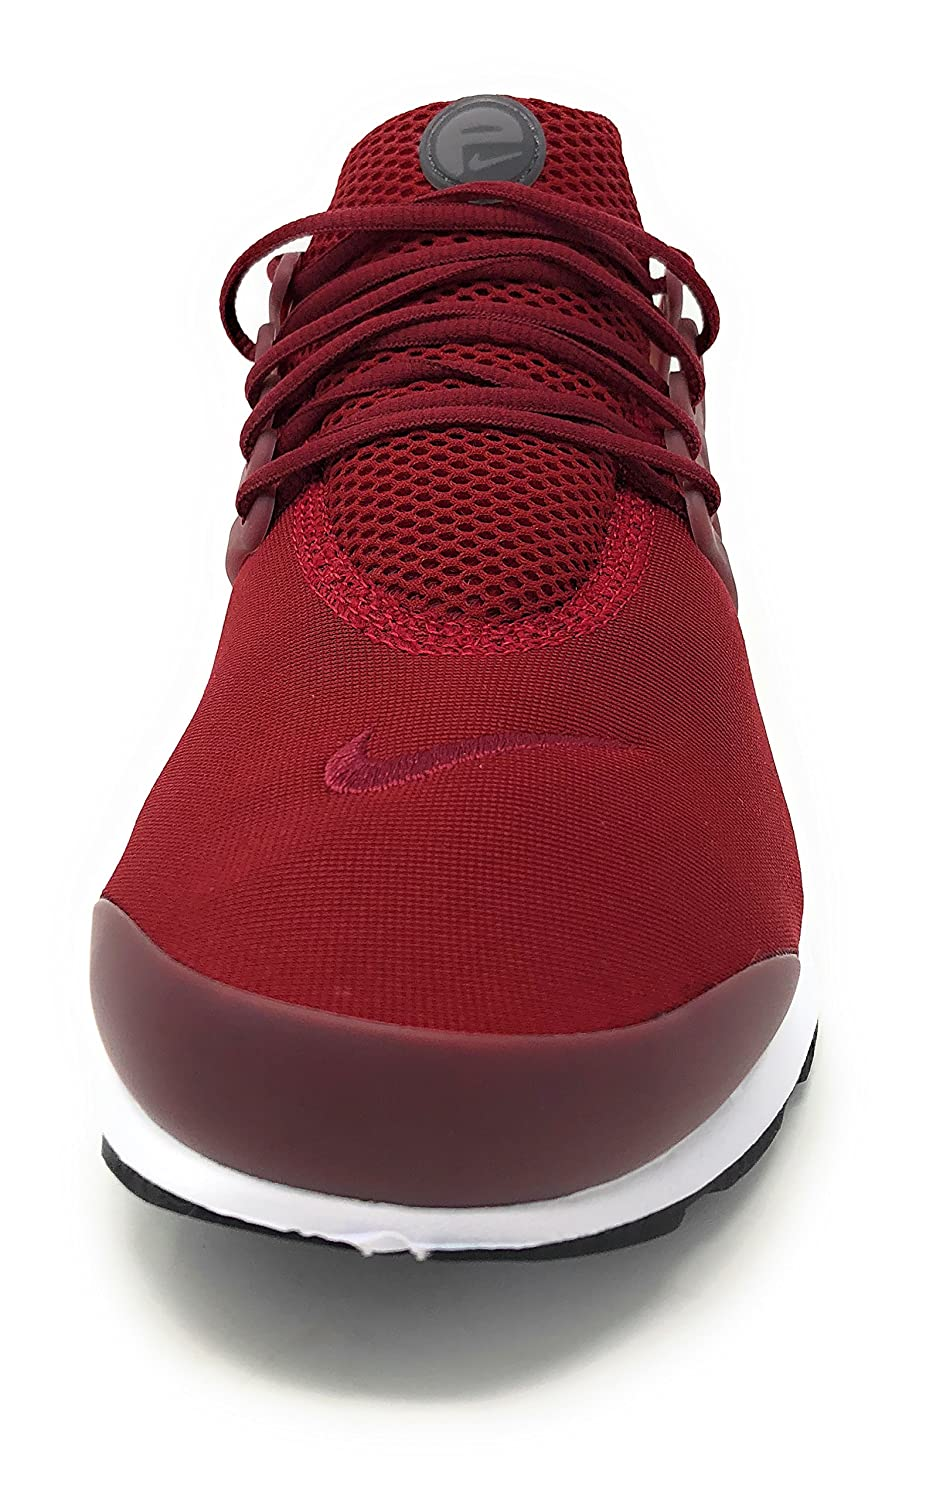 NIKE Men's Air Presto Essential B0042RN2WU 13 D(M) US|Team Red/Anthracite